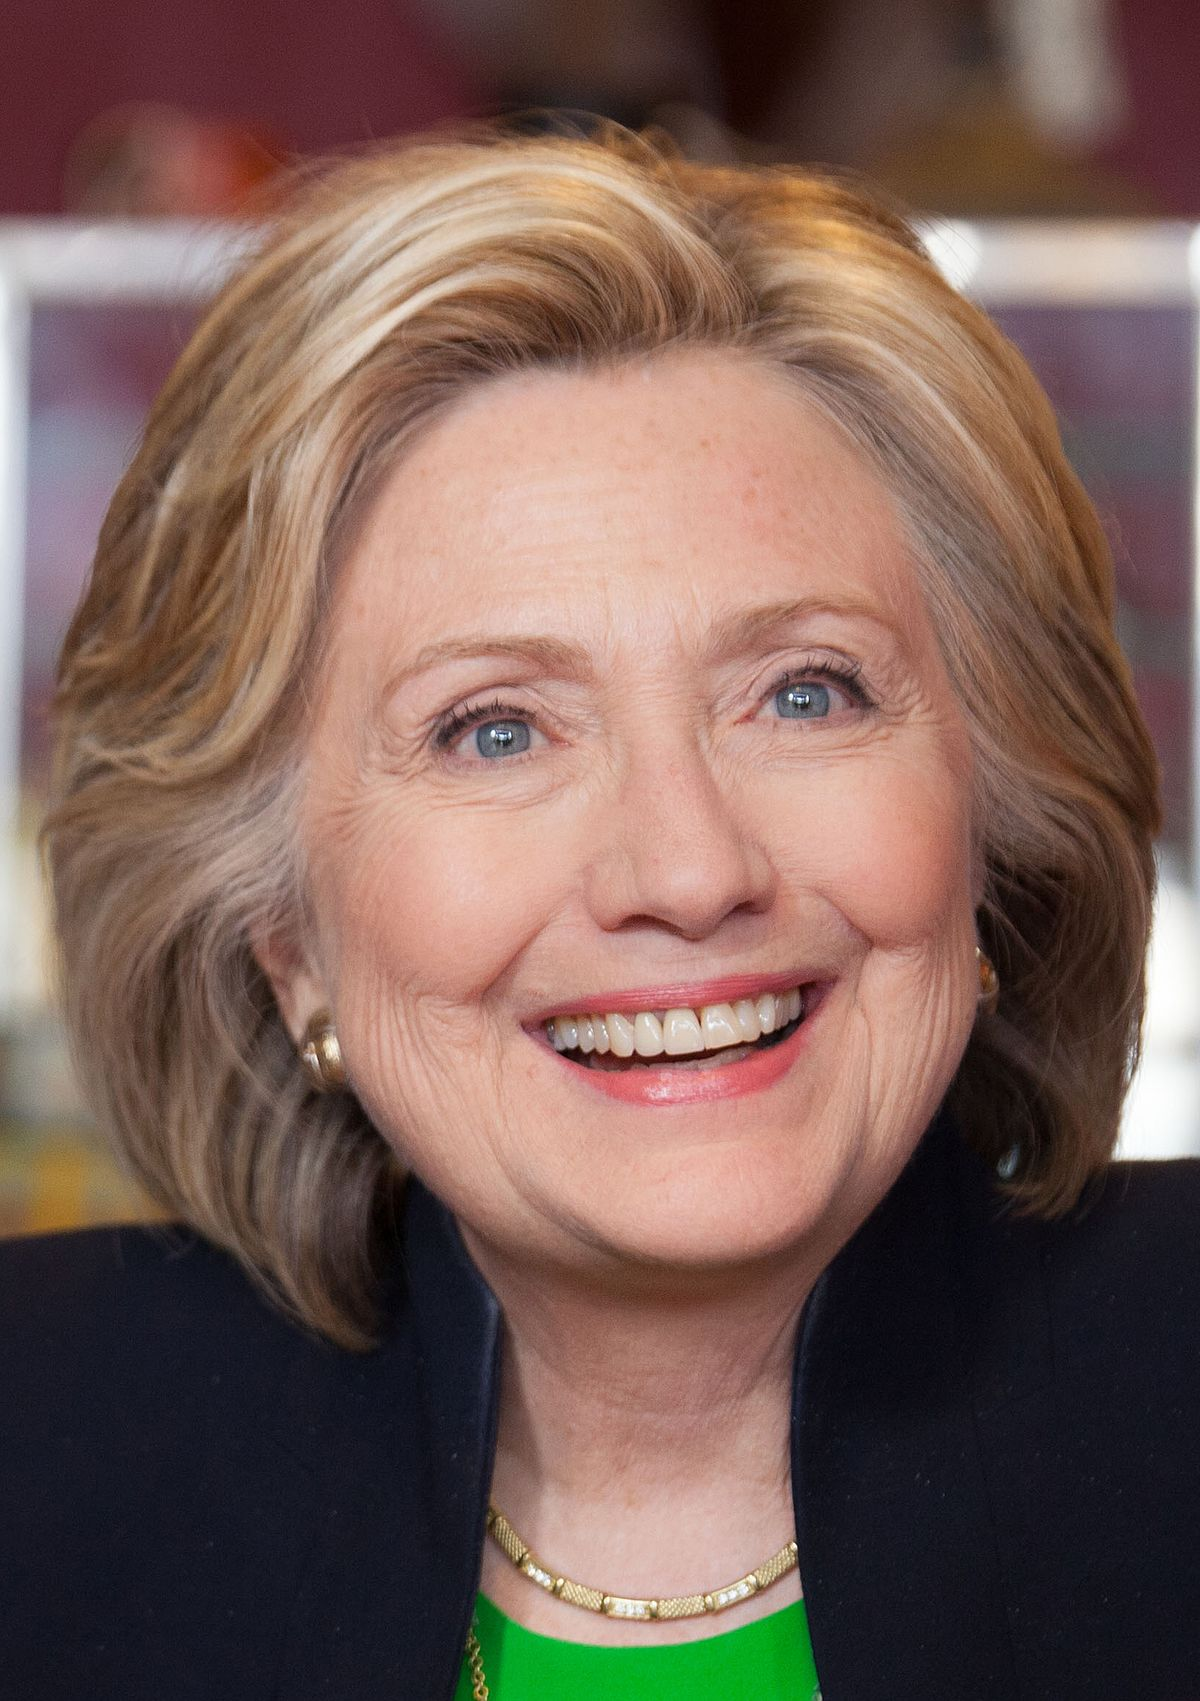 Hillary Clinton presidential campaign, 2016 - Wikipedia Hillary Clinton